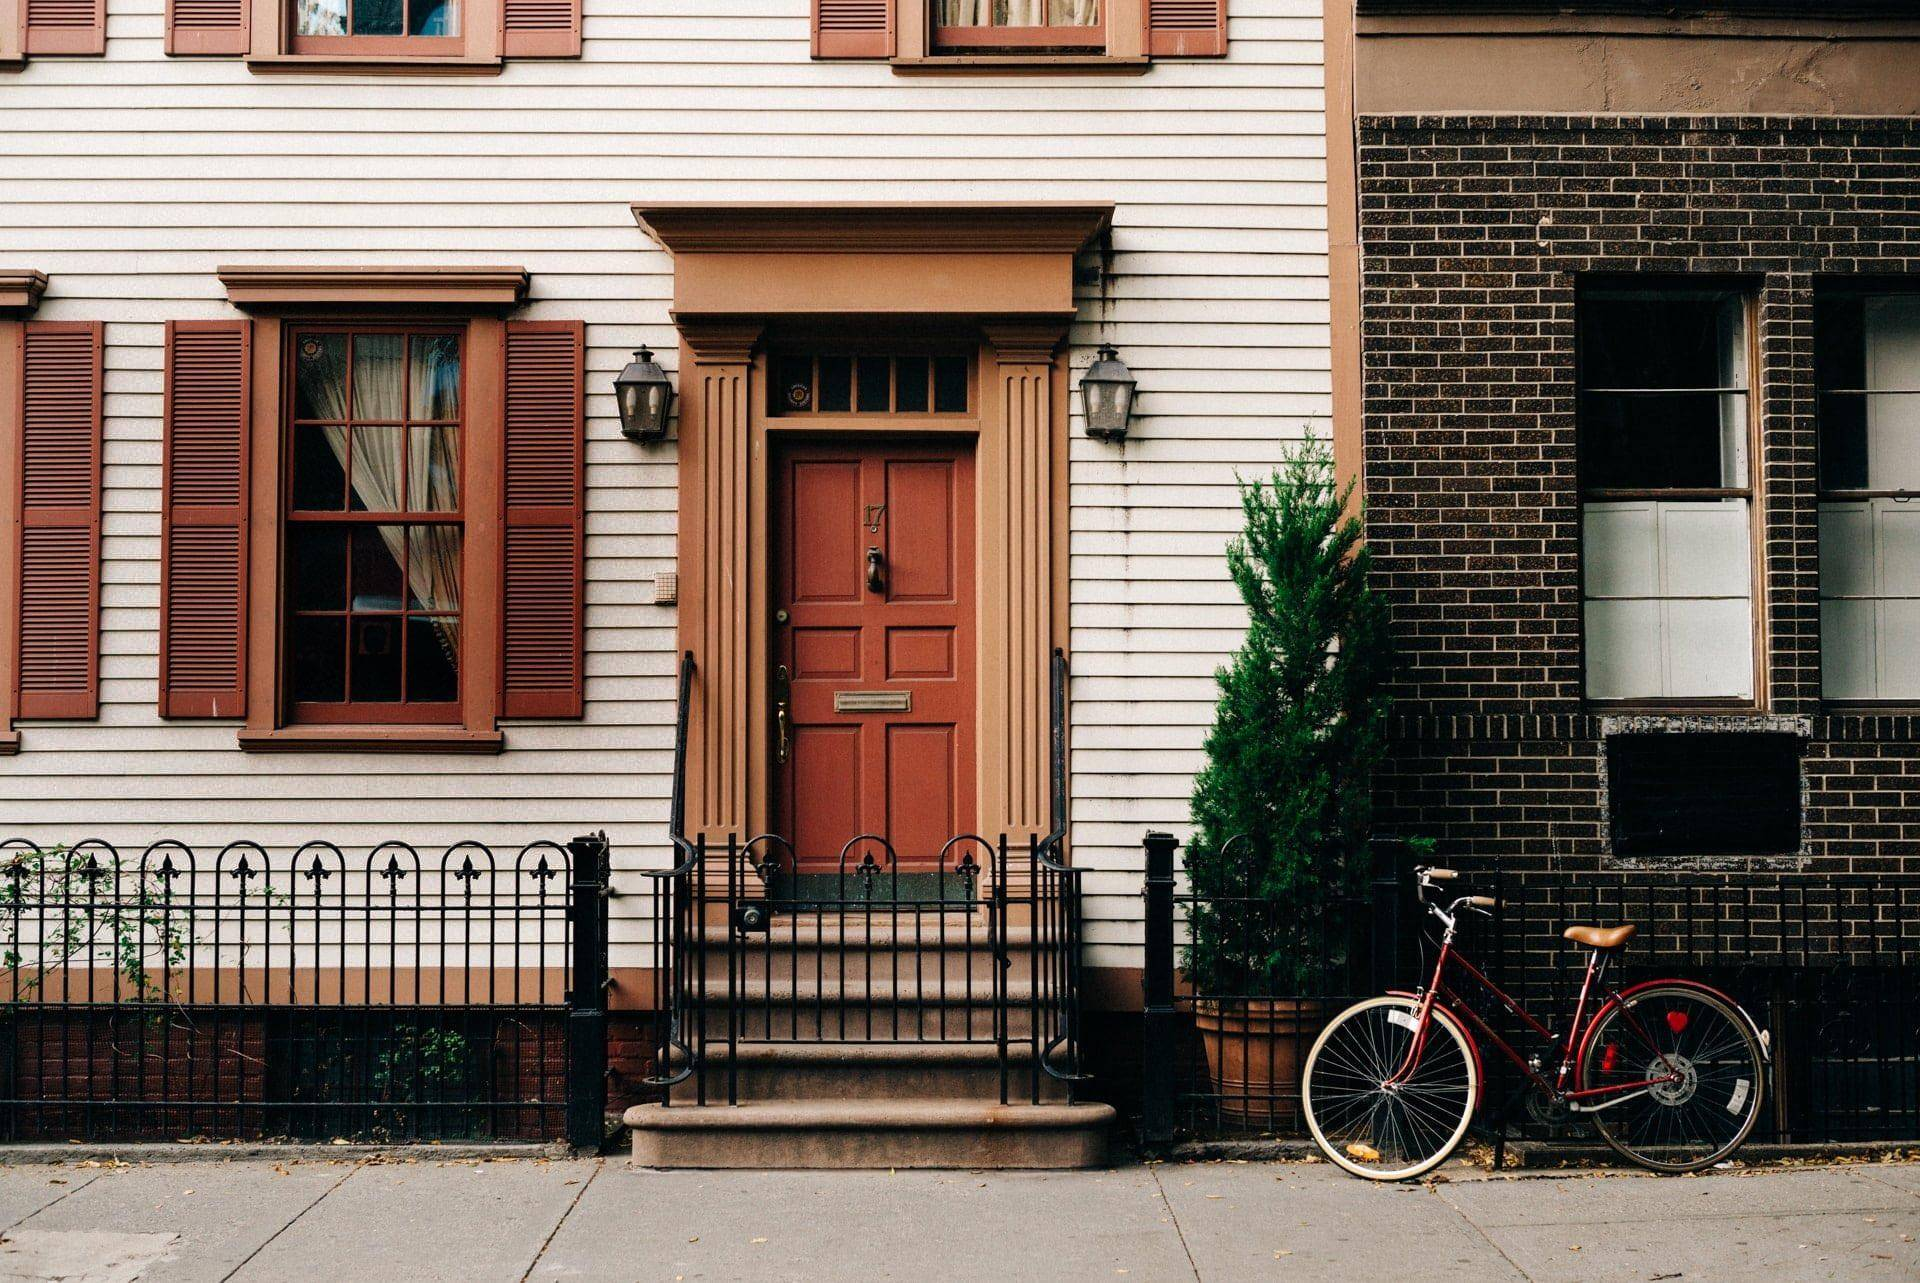 white facade of a city townhome with bicycle parked in front